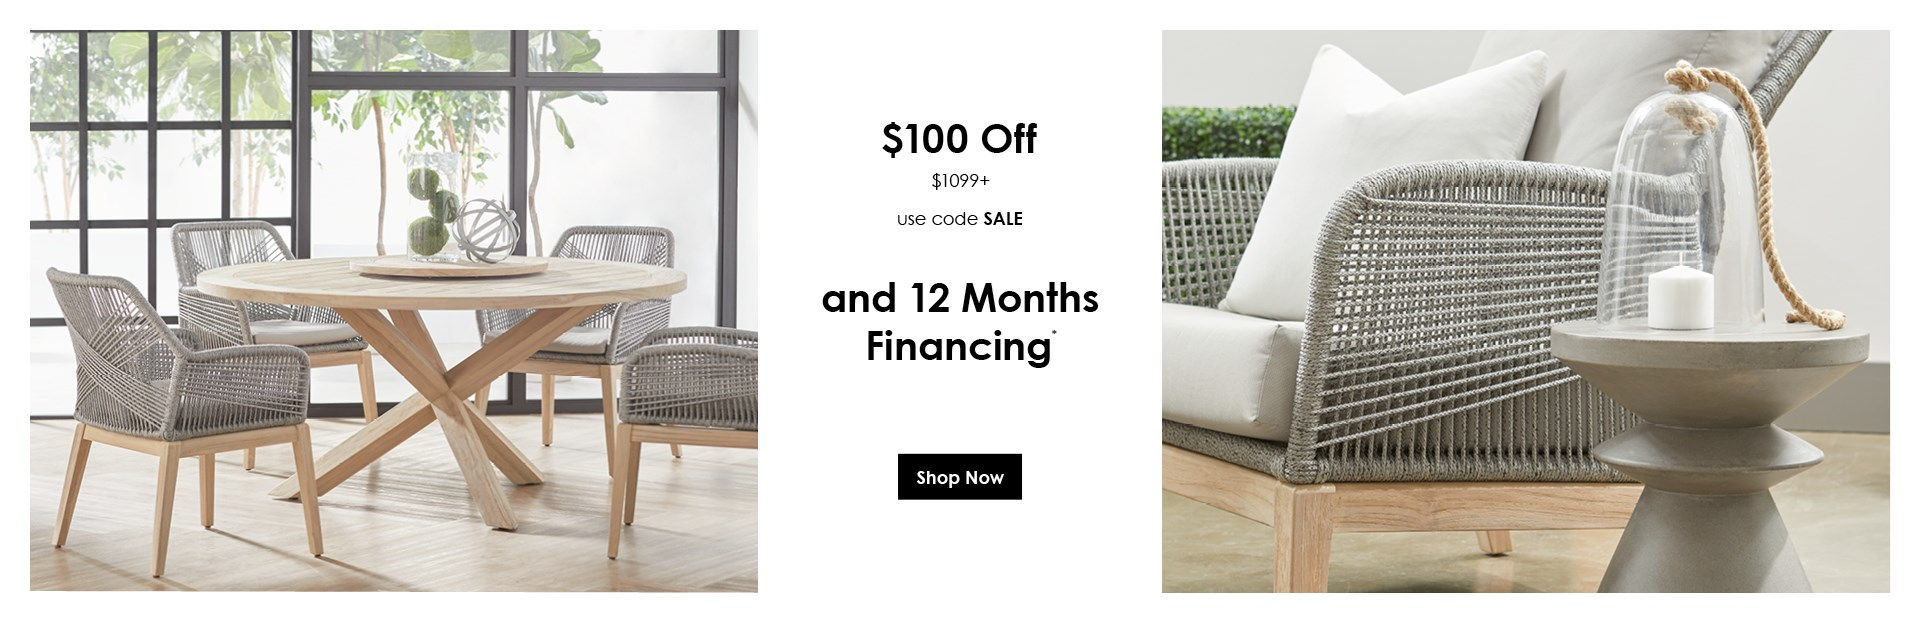 Save $100 with qualifying purchase. See store for details.